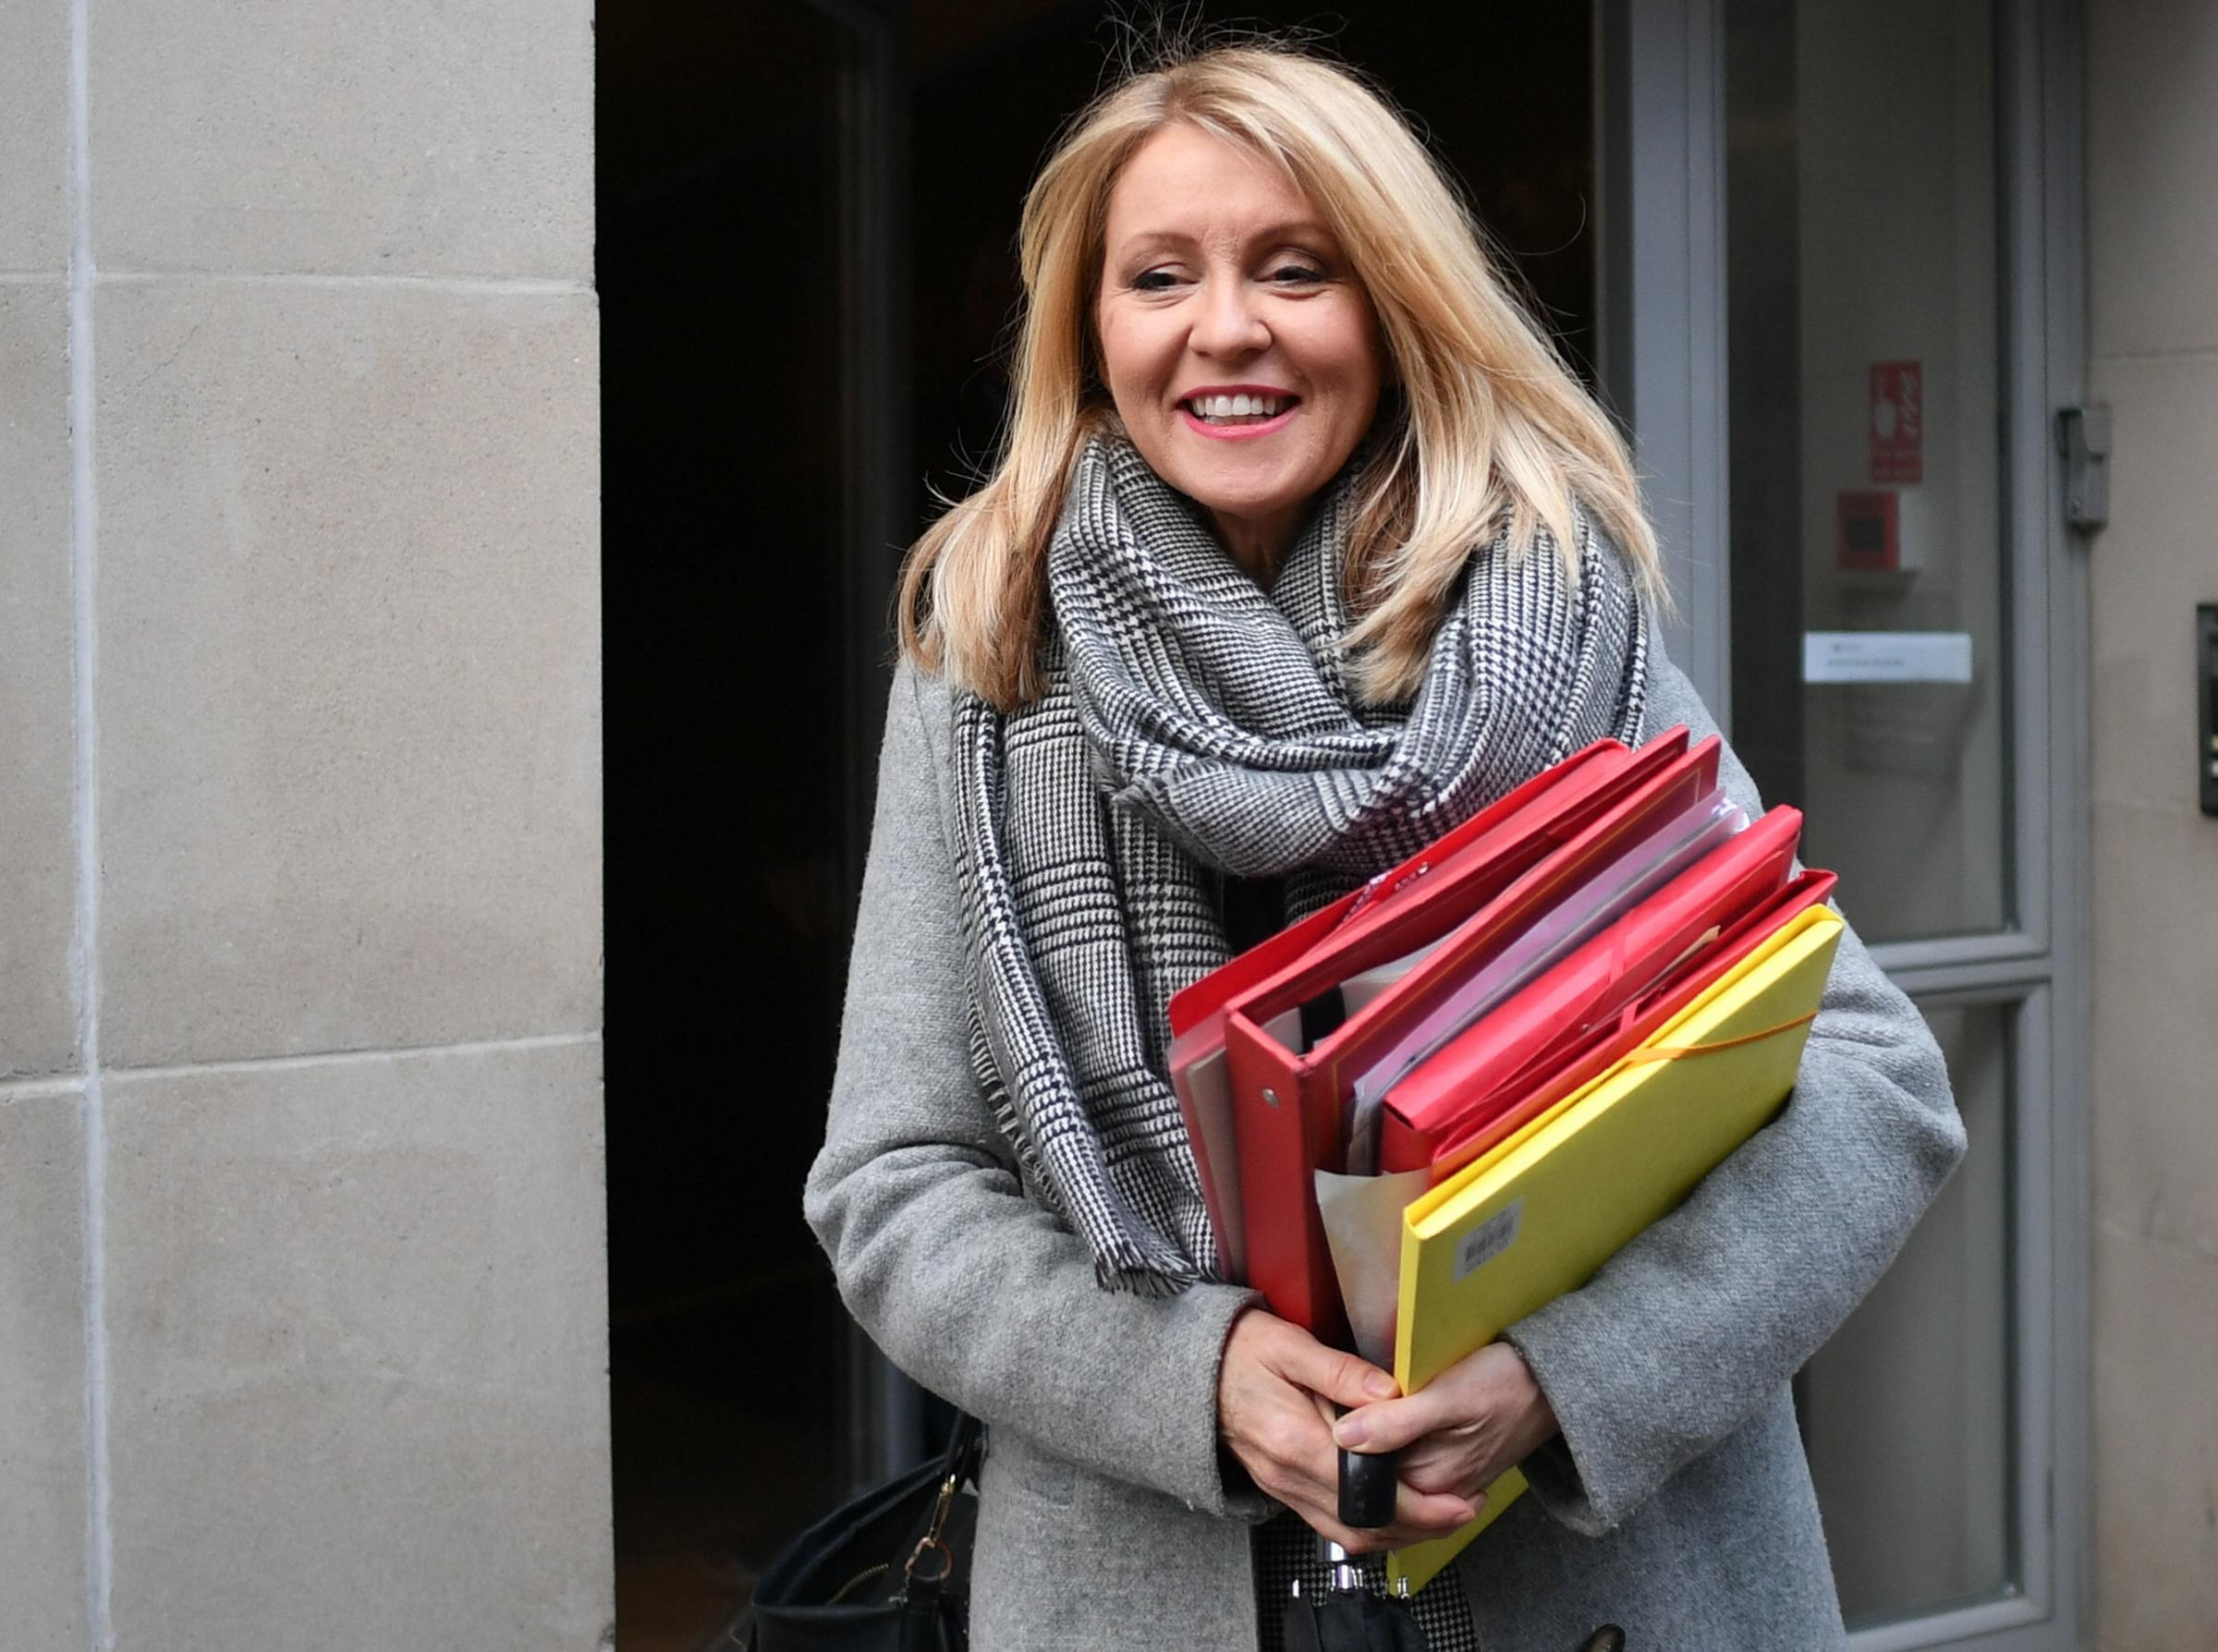 Esther McVey MP wrote to Cllr Meardon about the matter. Image: Stefan Rousseau/PA Wire.